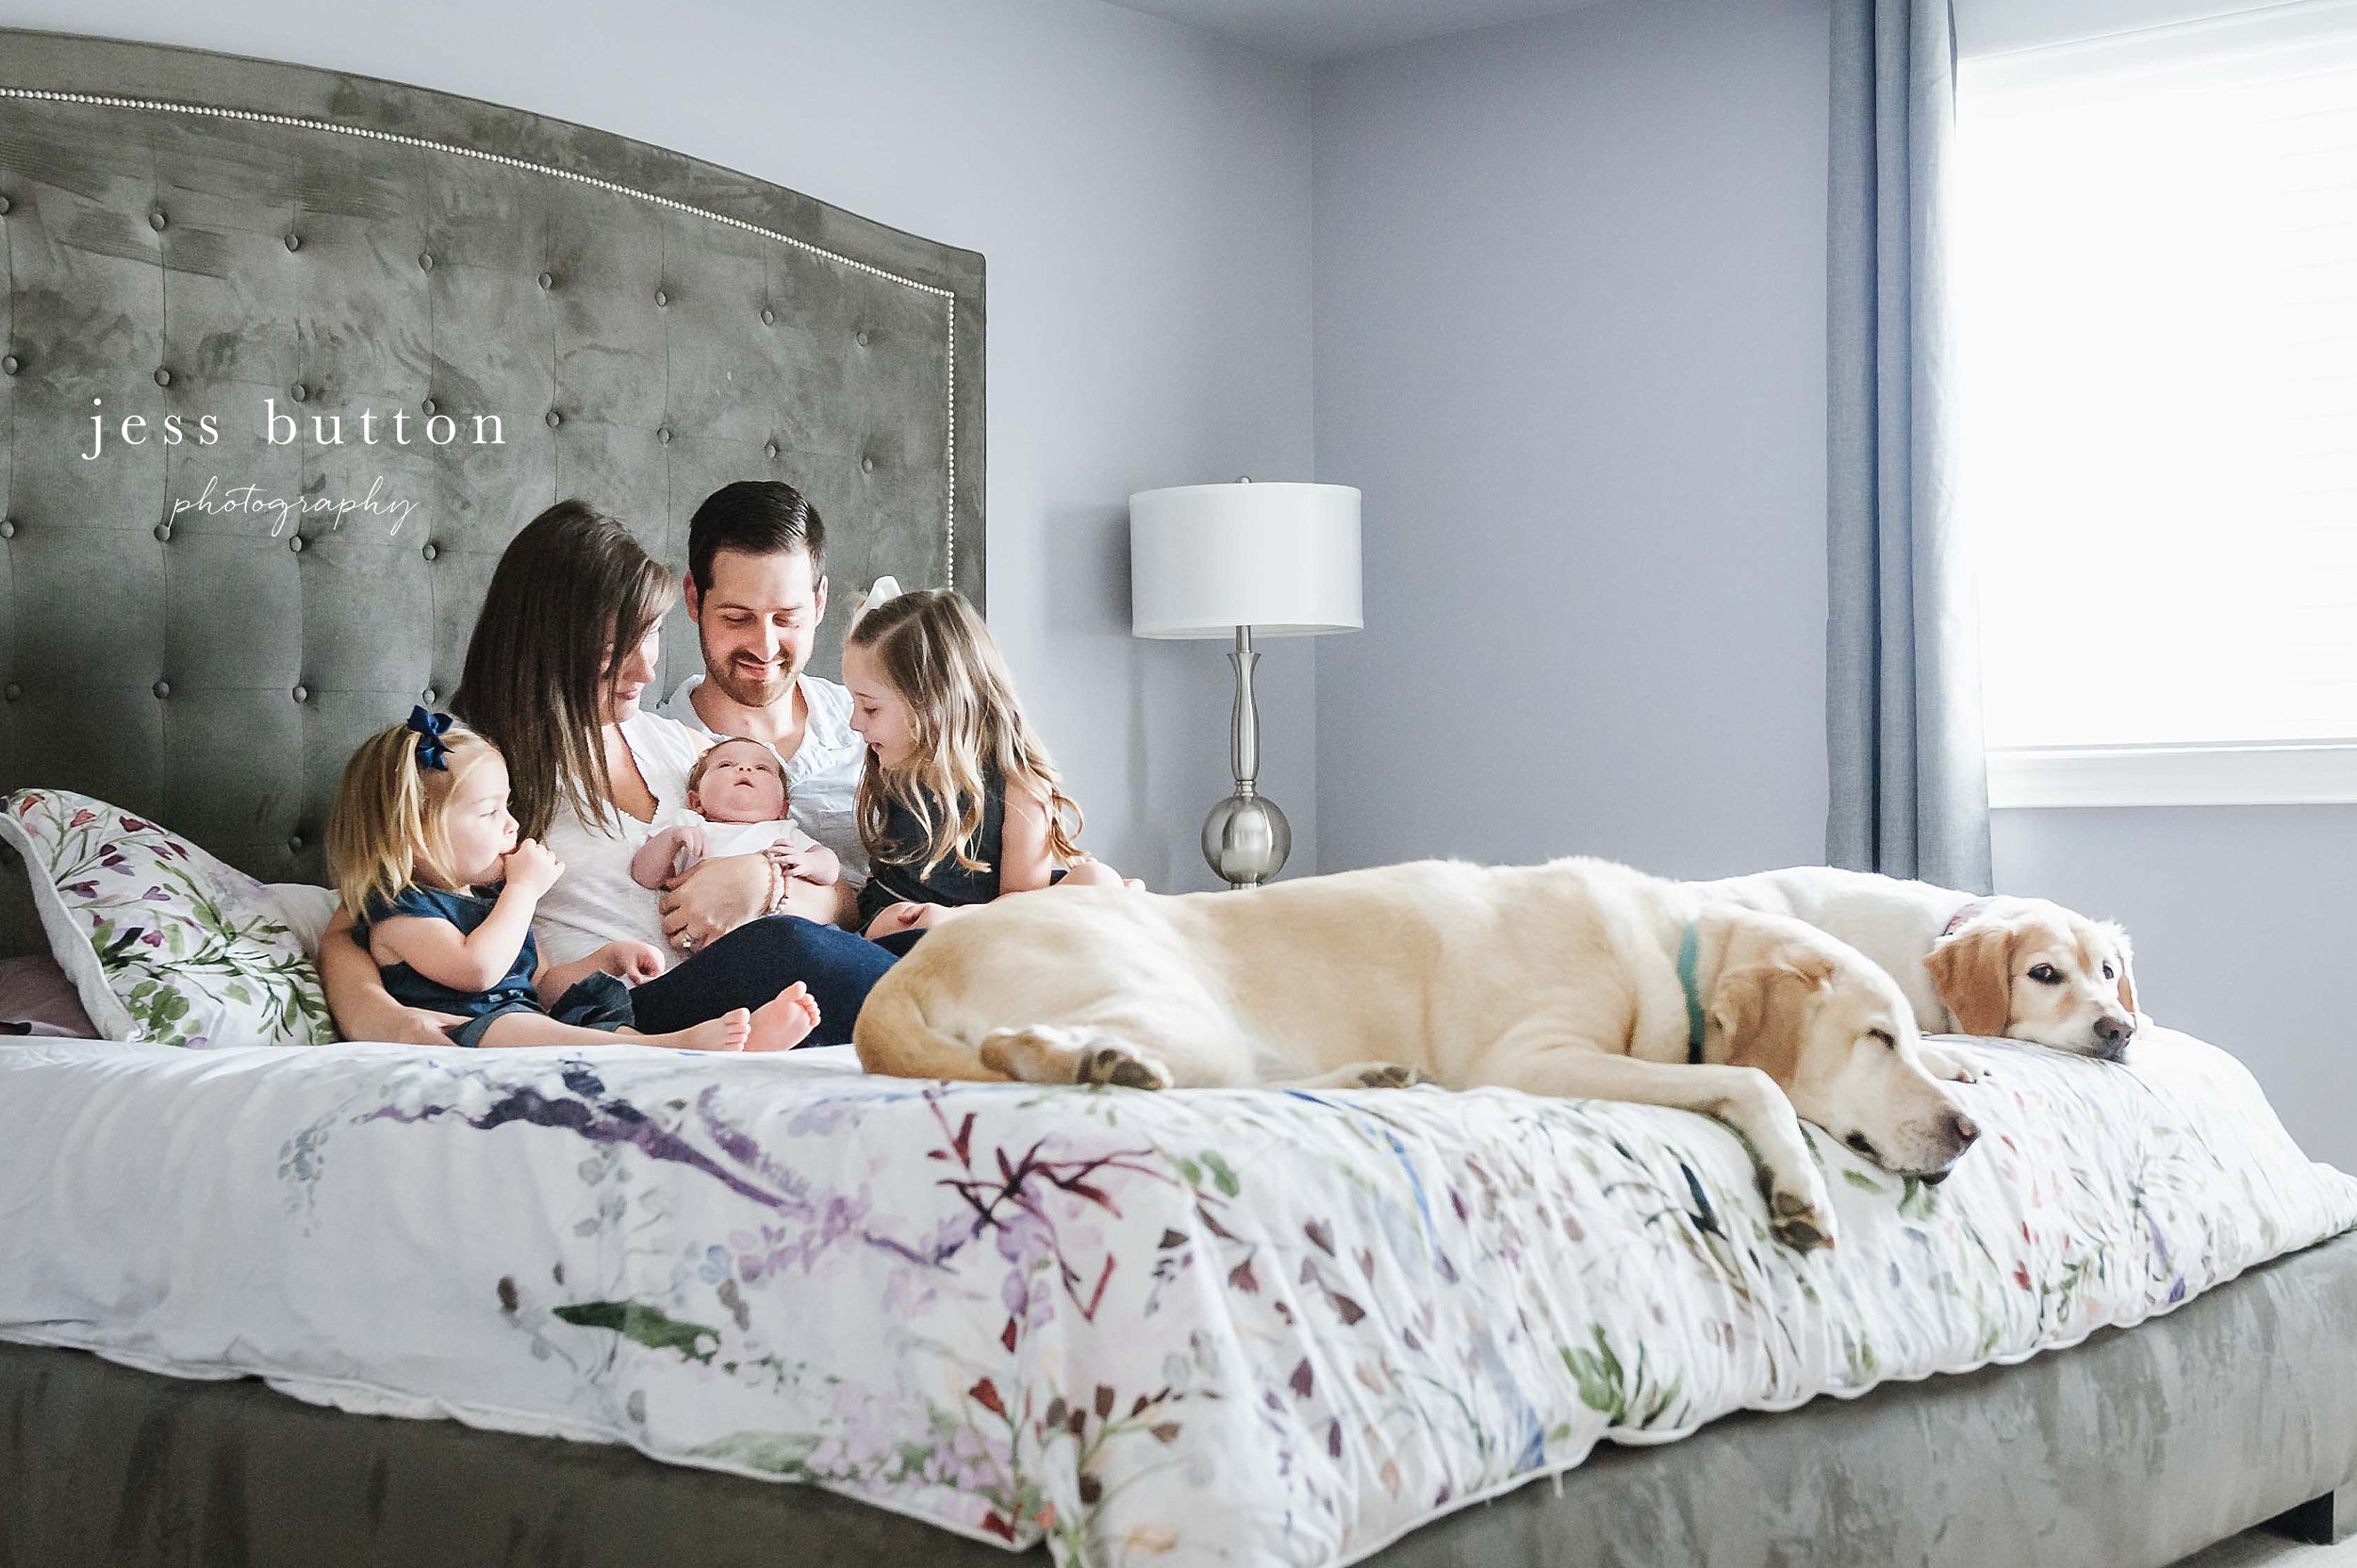 family of 5 on bed with golden retrievers - niagara newborn photography